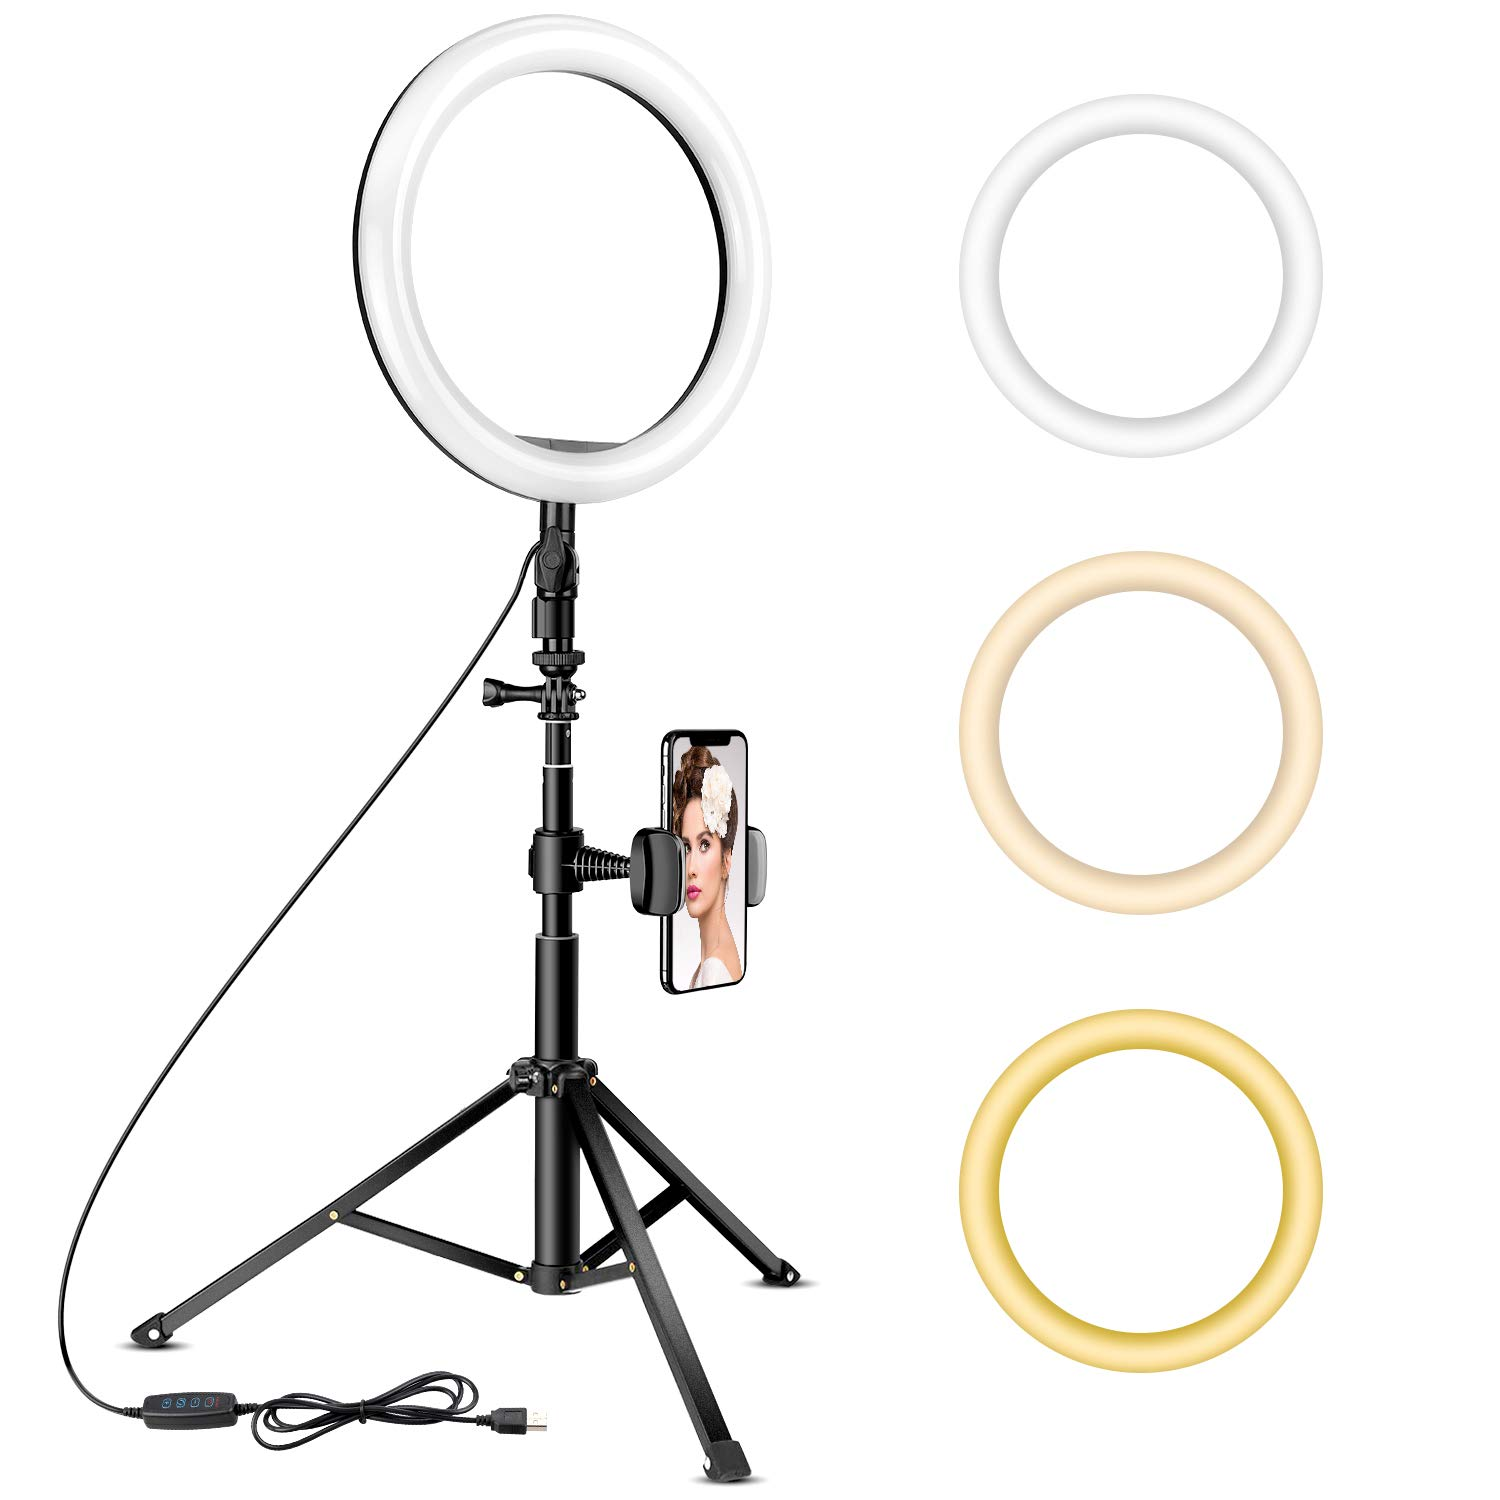 10.2'' Ring Light with Tripod Stand - Rovtop LED Camera Selfie Light Ring with iPhone Tripod and Phone Holder for Video/Photography/Makeup/Live Streaming, Compatible with iPhone and Android Phone